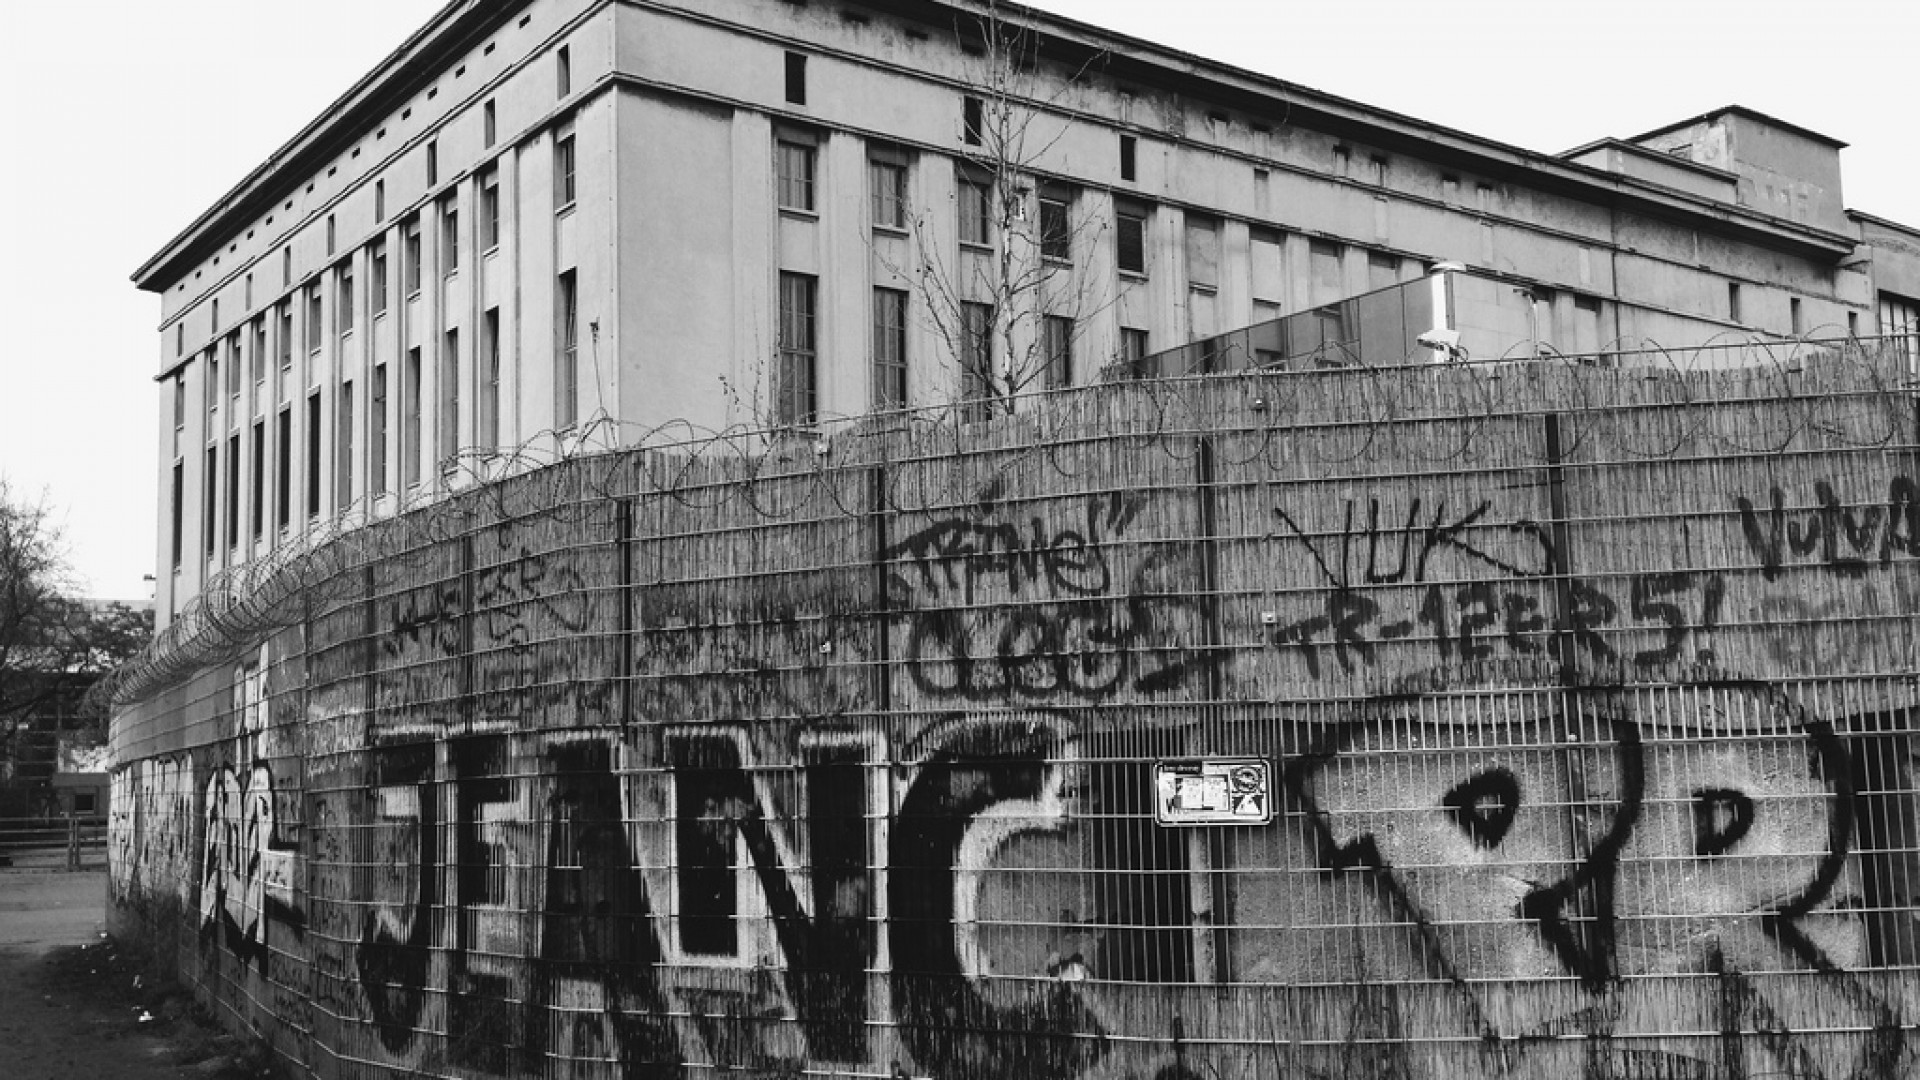 Black and white exterior of Berghain